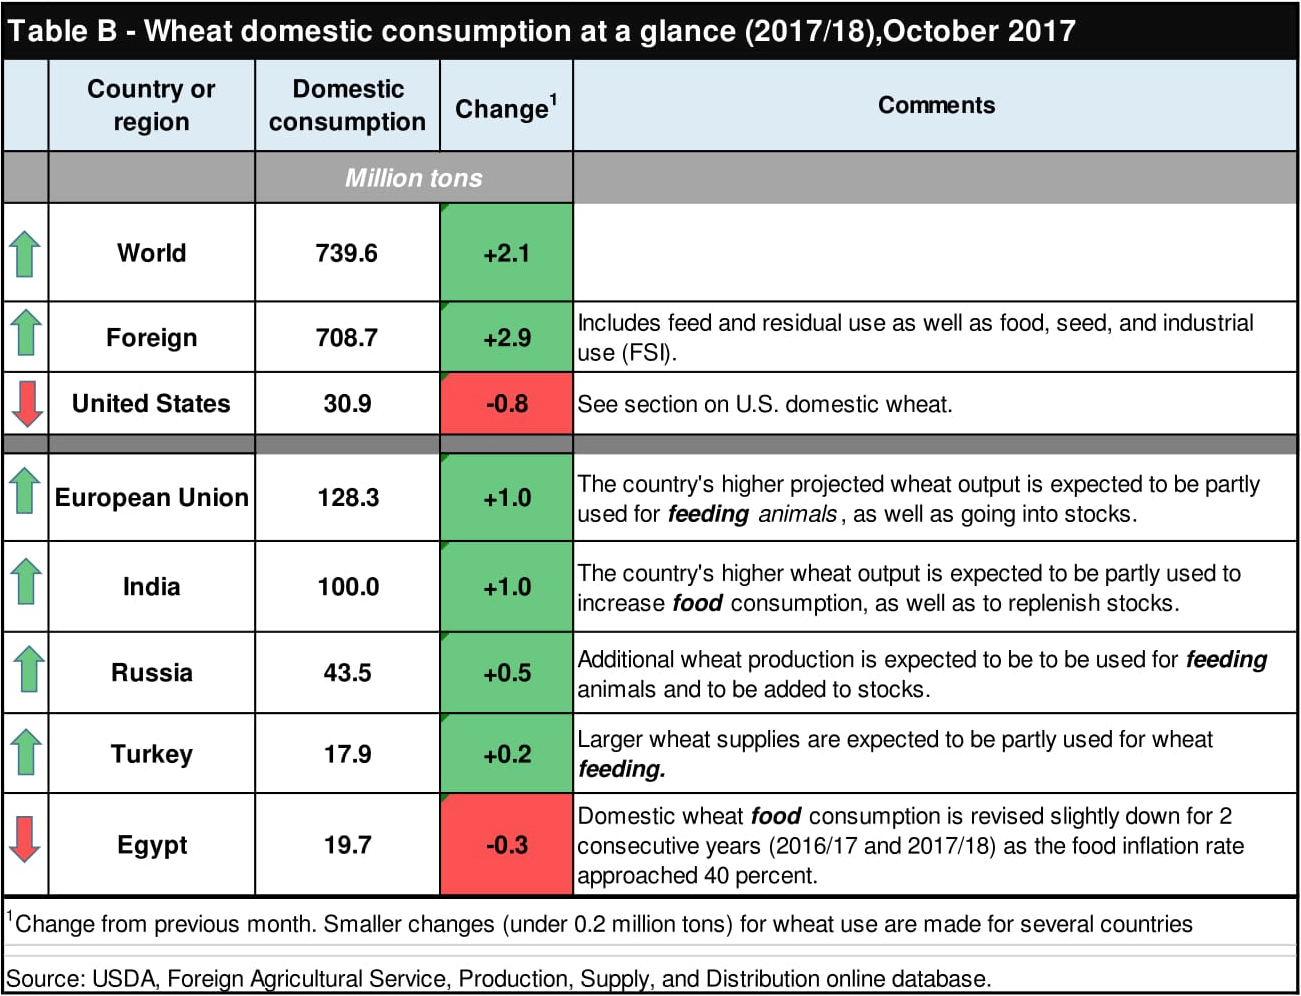 Table B - Wheat domestic consumption at a glance (2017/18), October 2017